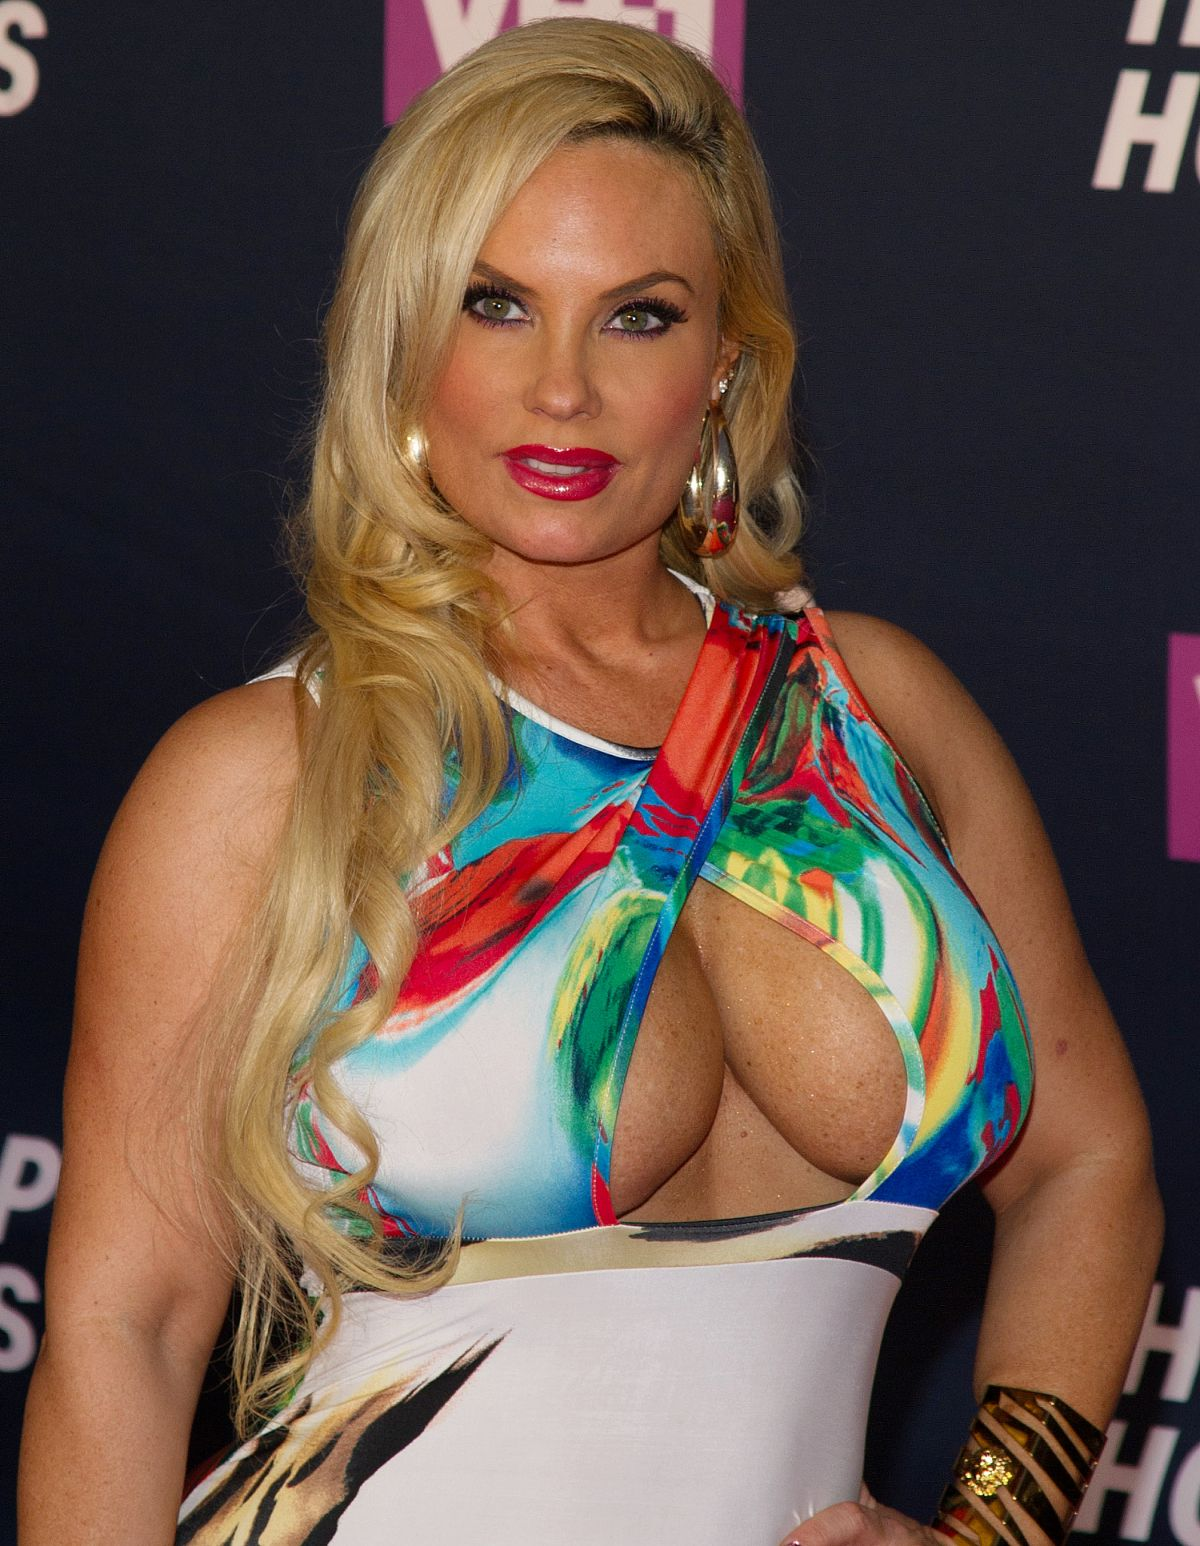 Coco Austin At Vh1 Hip Hop Honors In New York City Celebzz